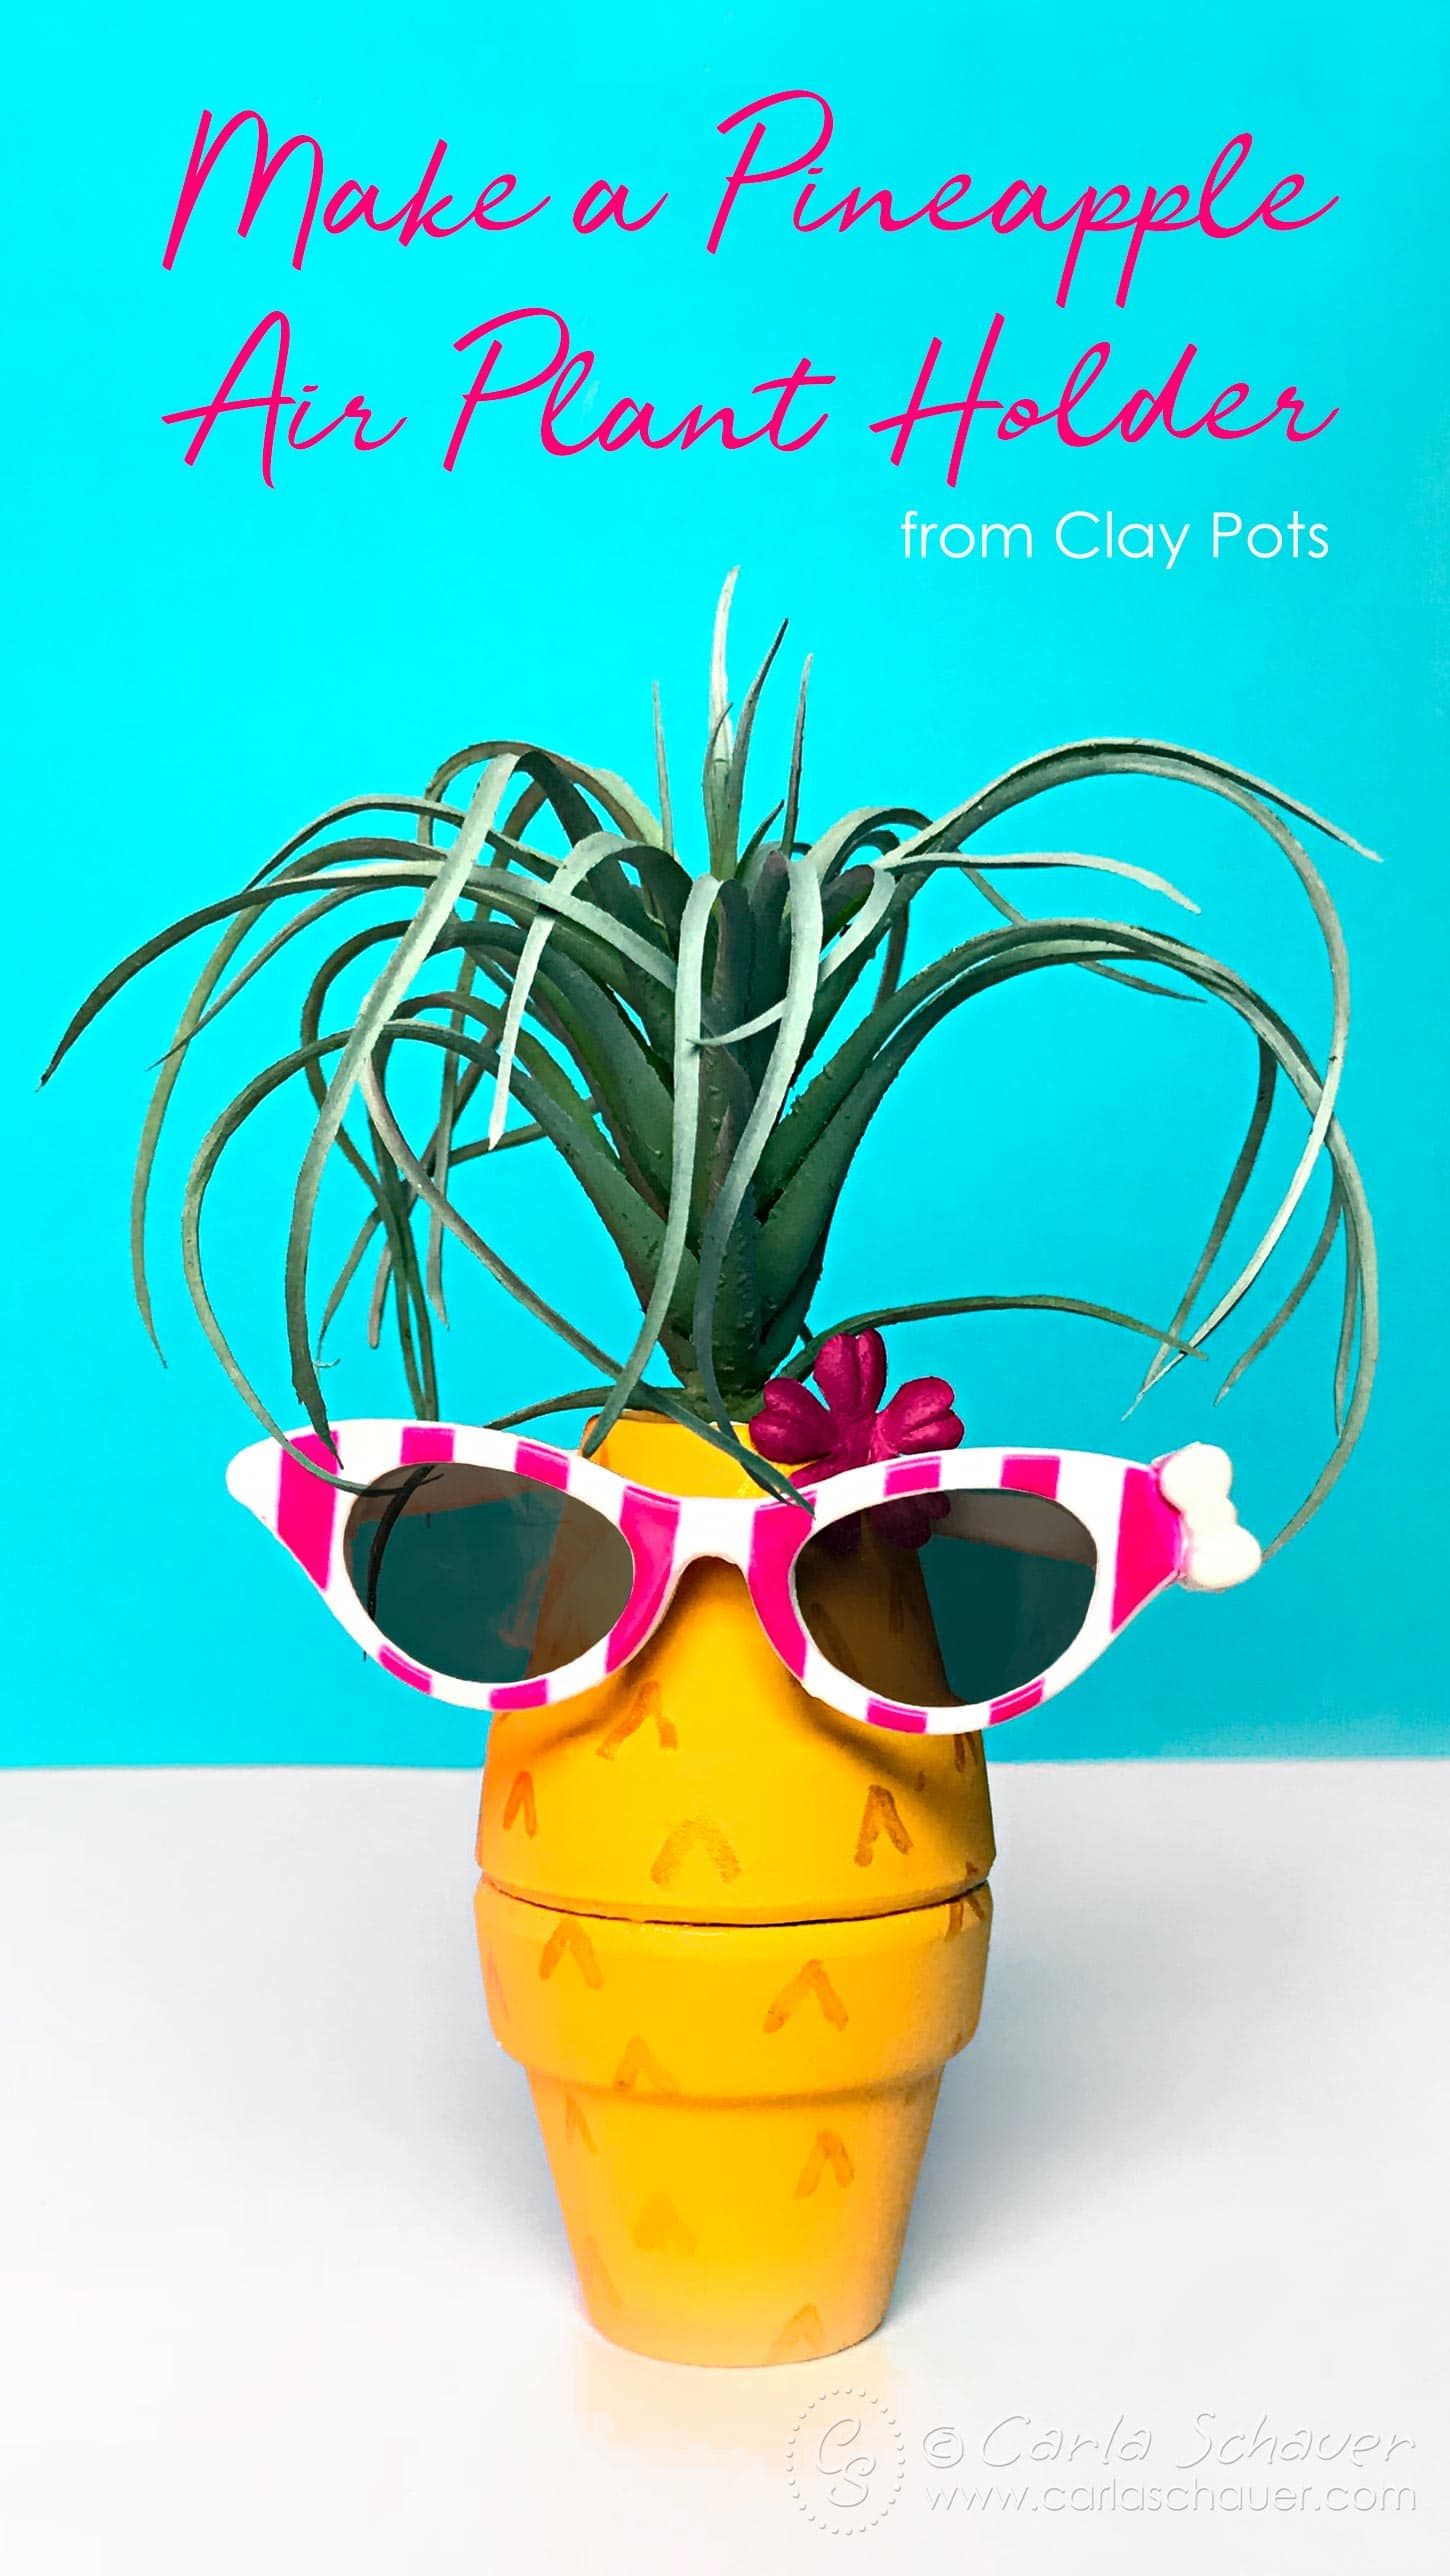 Seriously adorable summer craft! Make a Pineapple Air Plant Holder from clay pots. | Carla Schauer Designs #claypots #pineapplecraft #pineappledecor #airplant #quickcraft